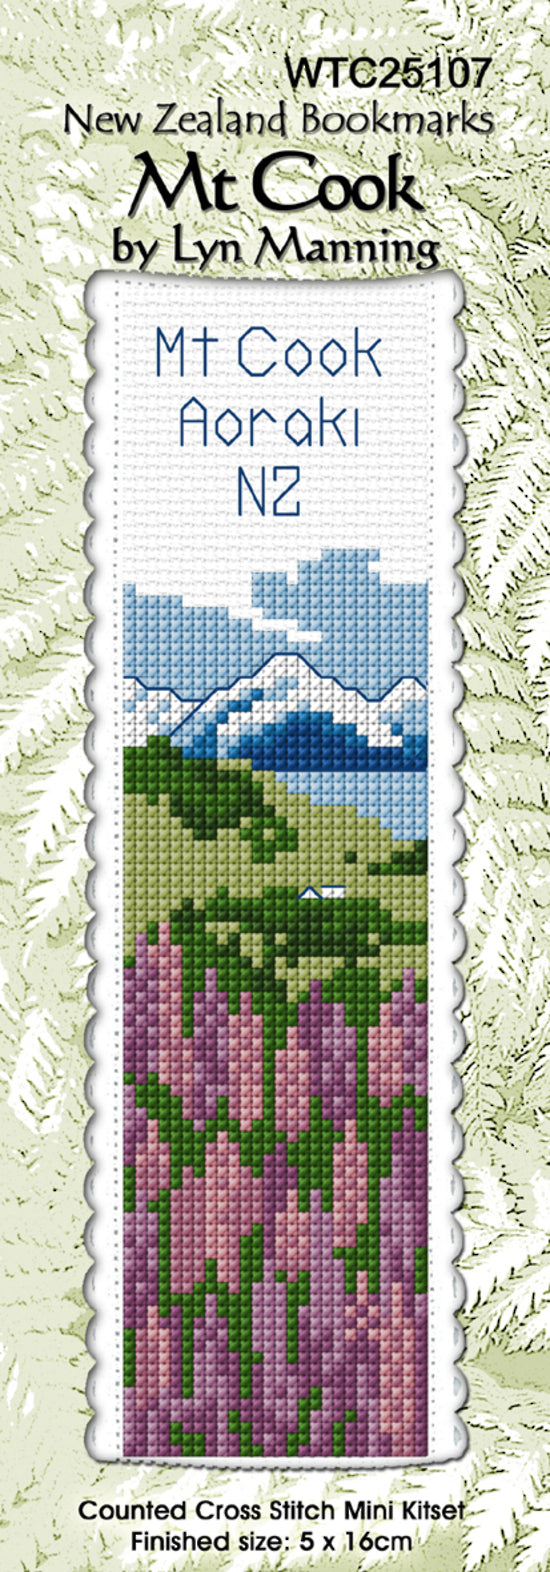 Cross-stitch bookmark - Mt Cook Aoraki